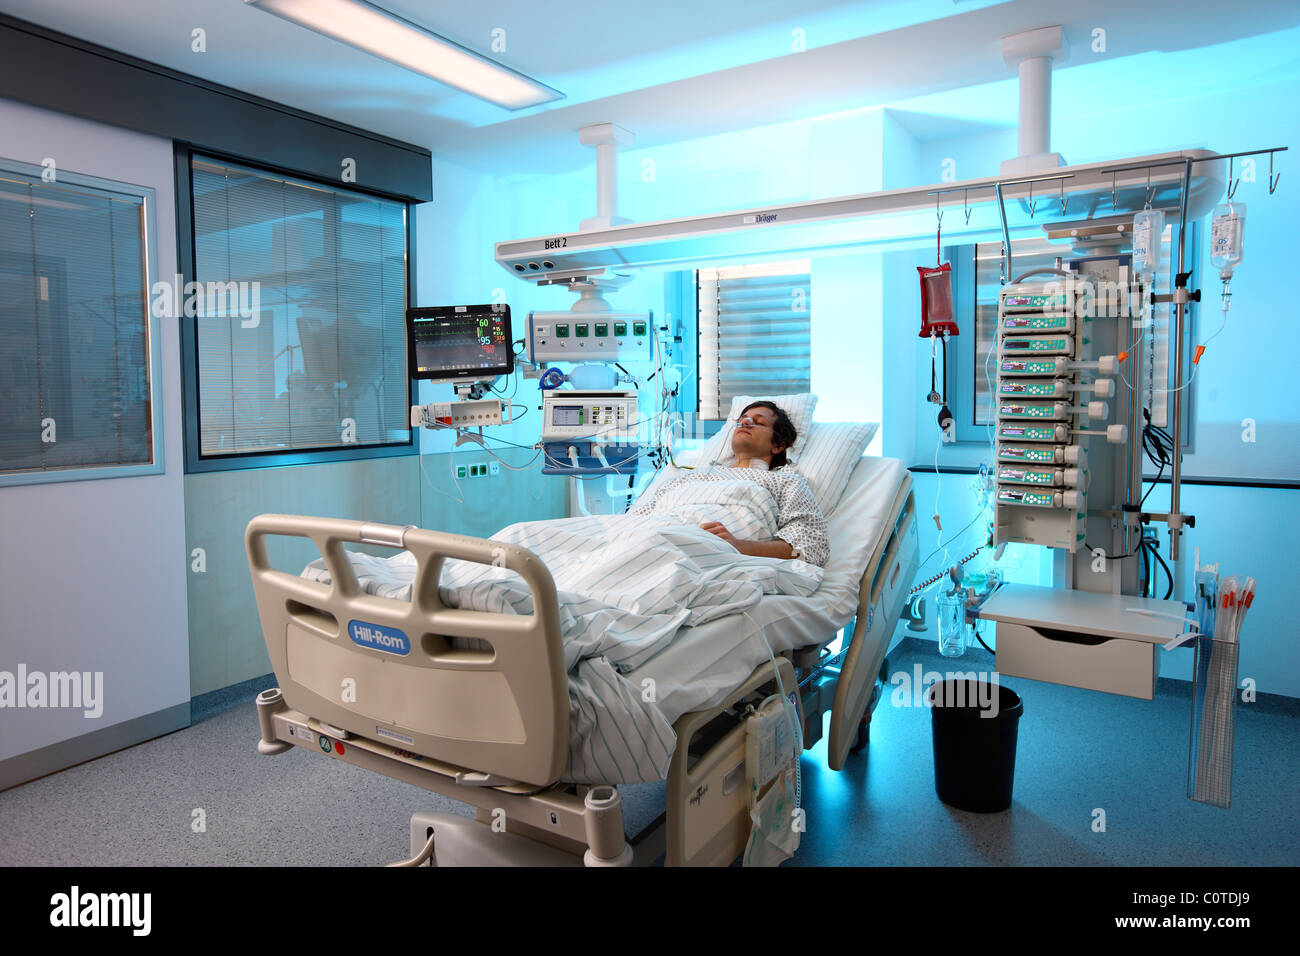 Intensive care unit in a hospital. A patient is connected to different life support systems. - Stock Image